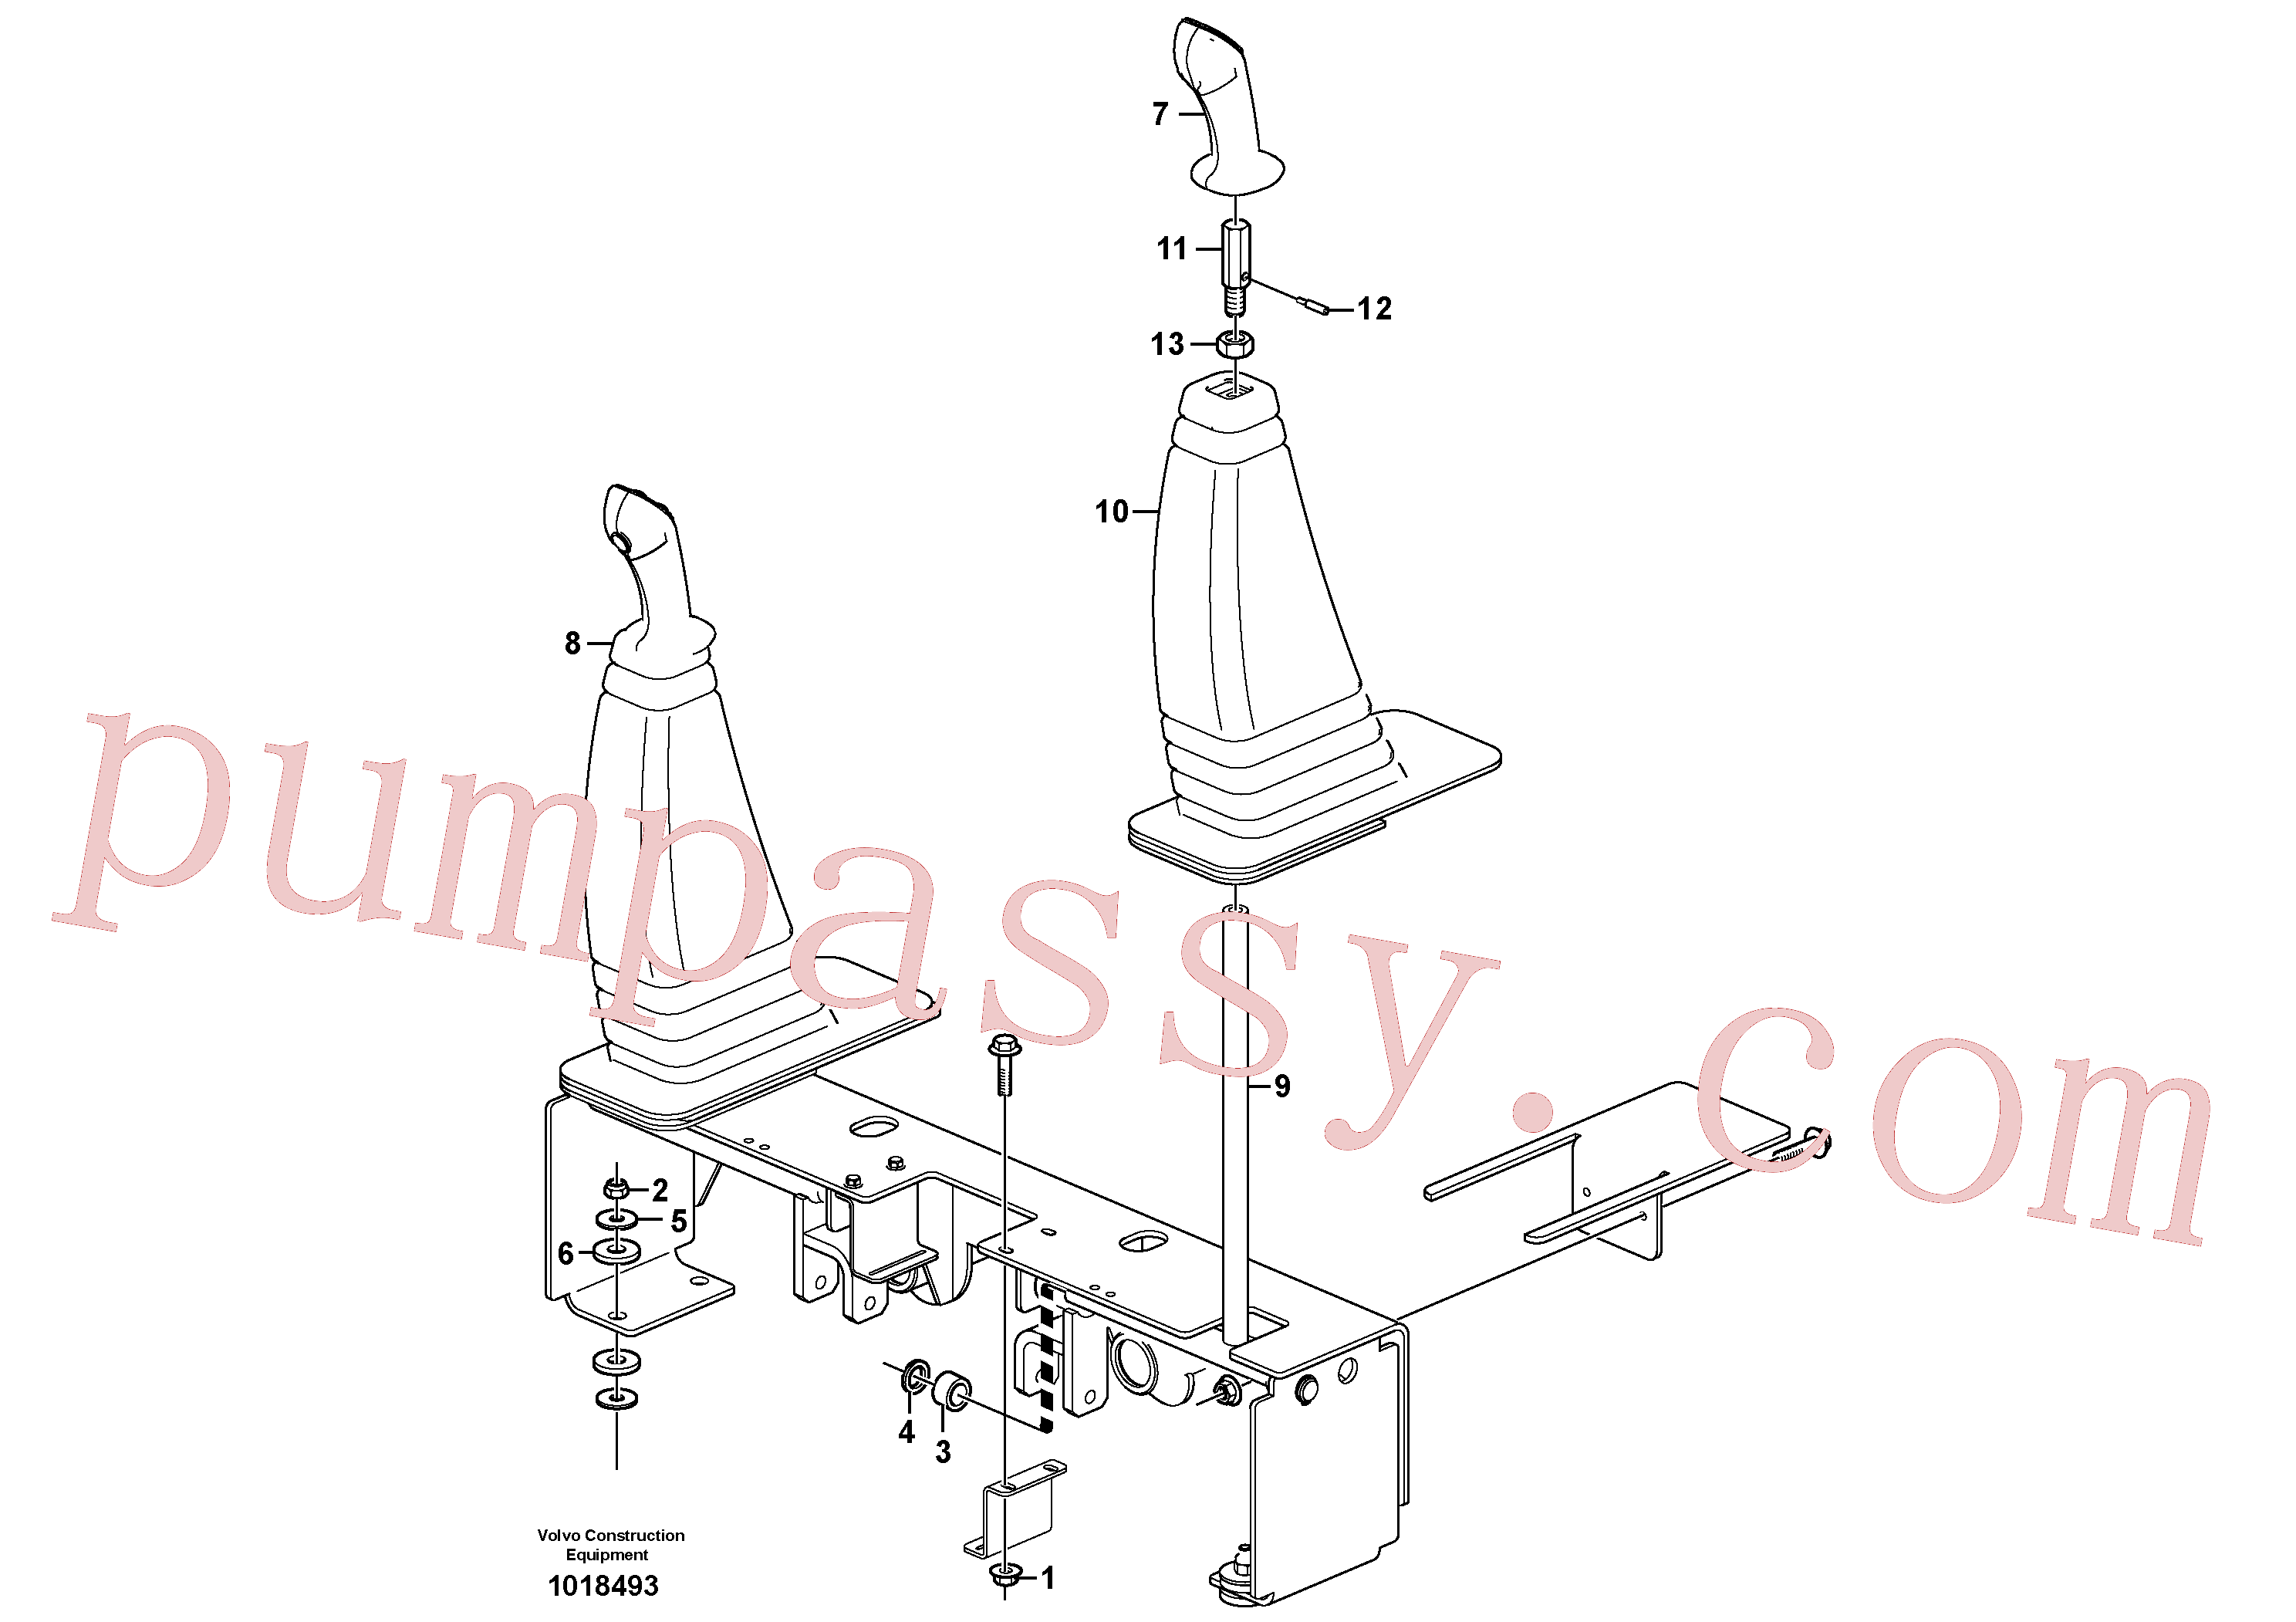 VOE11841243 for Volvo Optional hand controls(1018493 assembly)